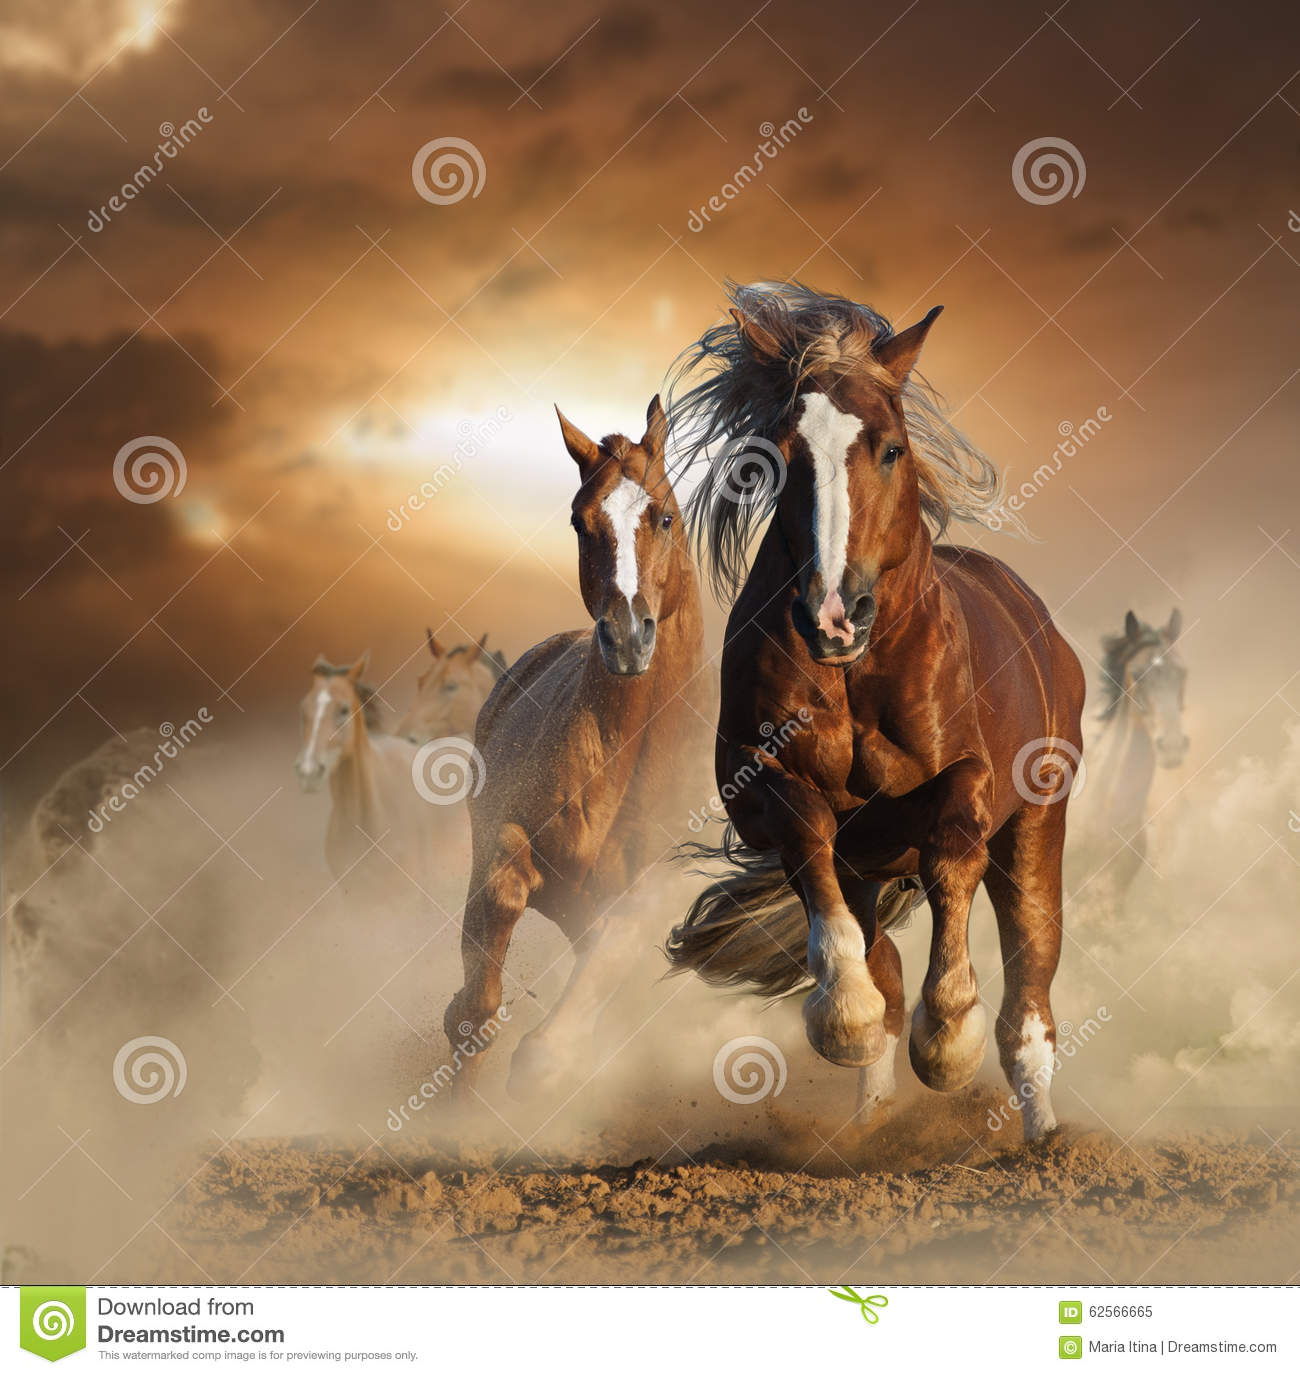 Two wild chestnut horses running together in dust